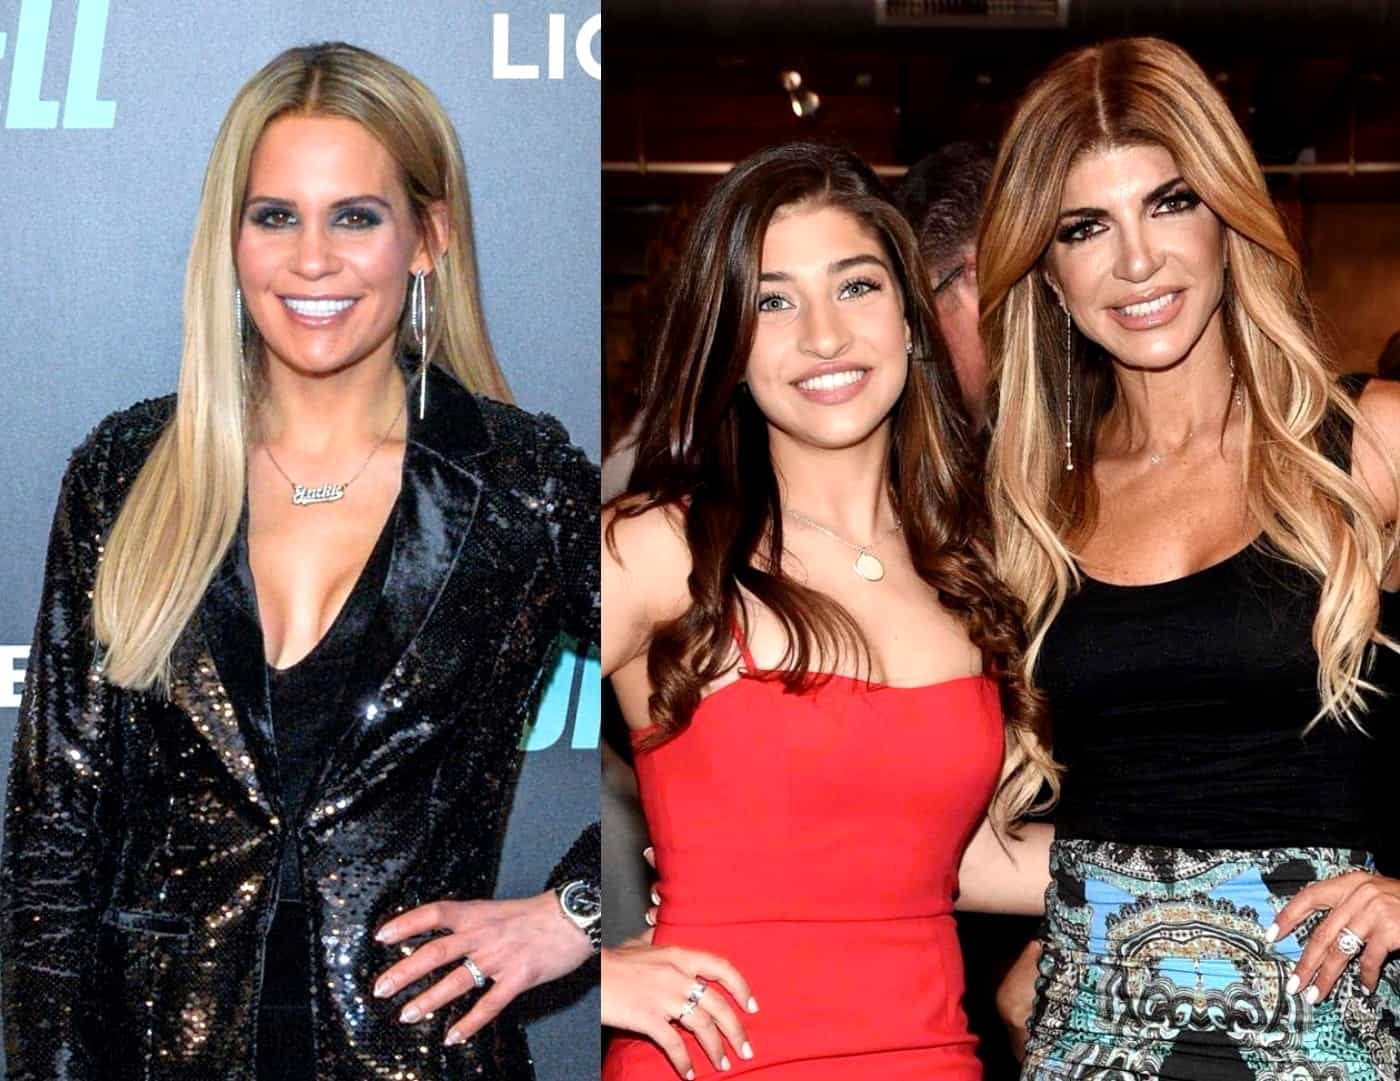 """RHONJ's Jackie Goldschneider Clarifies Rumor About Gia Giudice and Confirms There's """"No Truth To It,"""" Explains Bringing Up Gia and Slams Teresa Giudice For """"Disgusting"""" Rumor About Husband"""